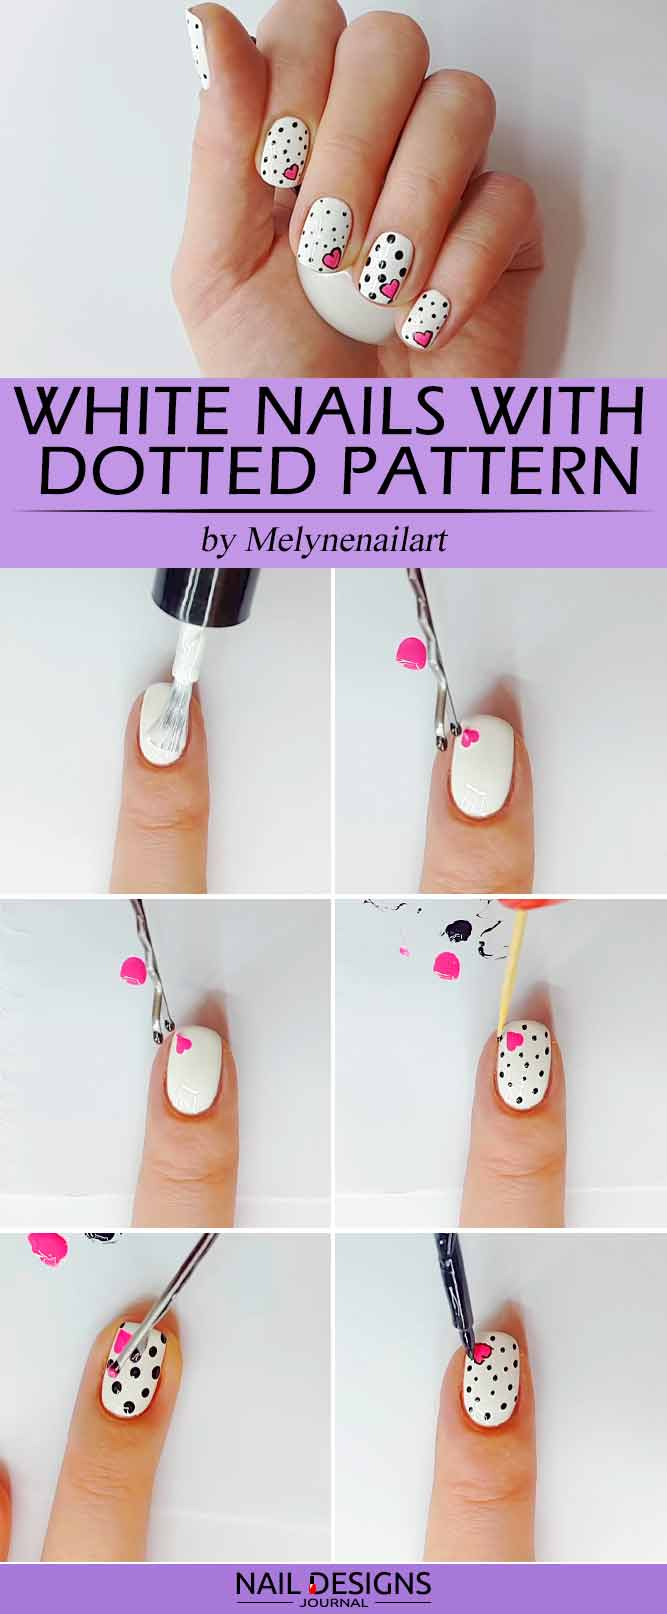 White Nails With Dotted Pattern